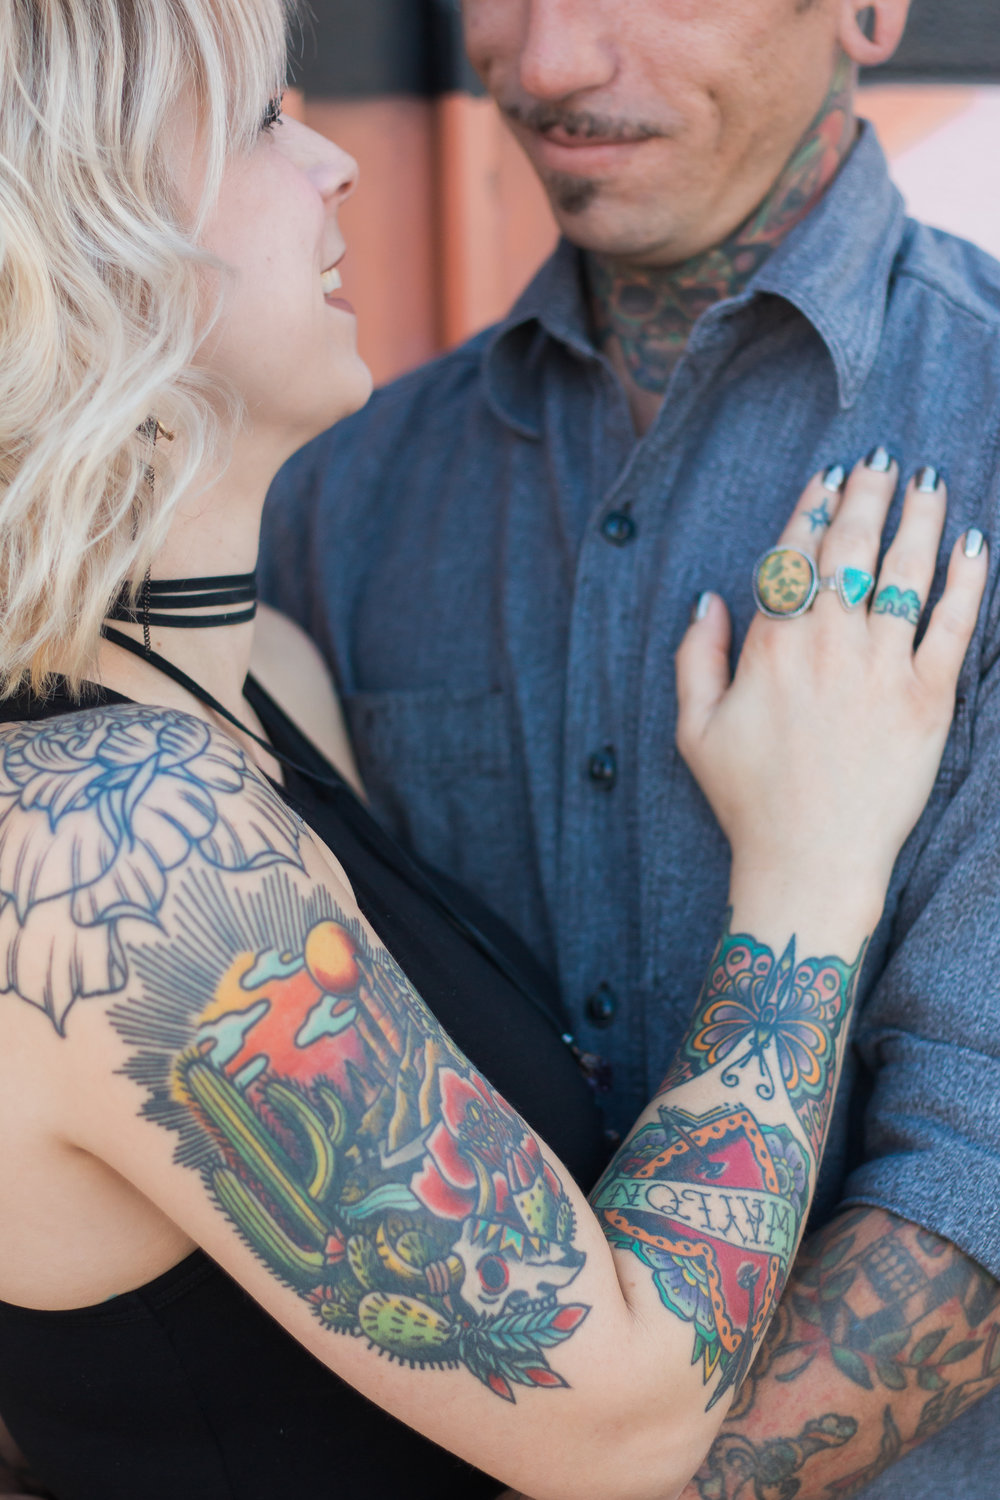 Kate-Alison-Photography-Las-Vegas-Tattooed-Engagement-Session